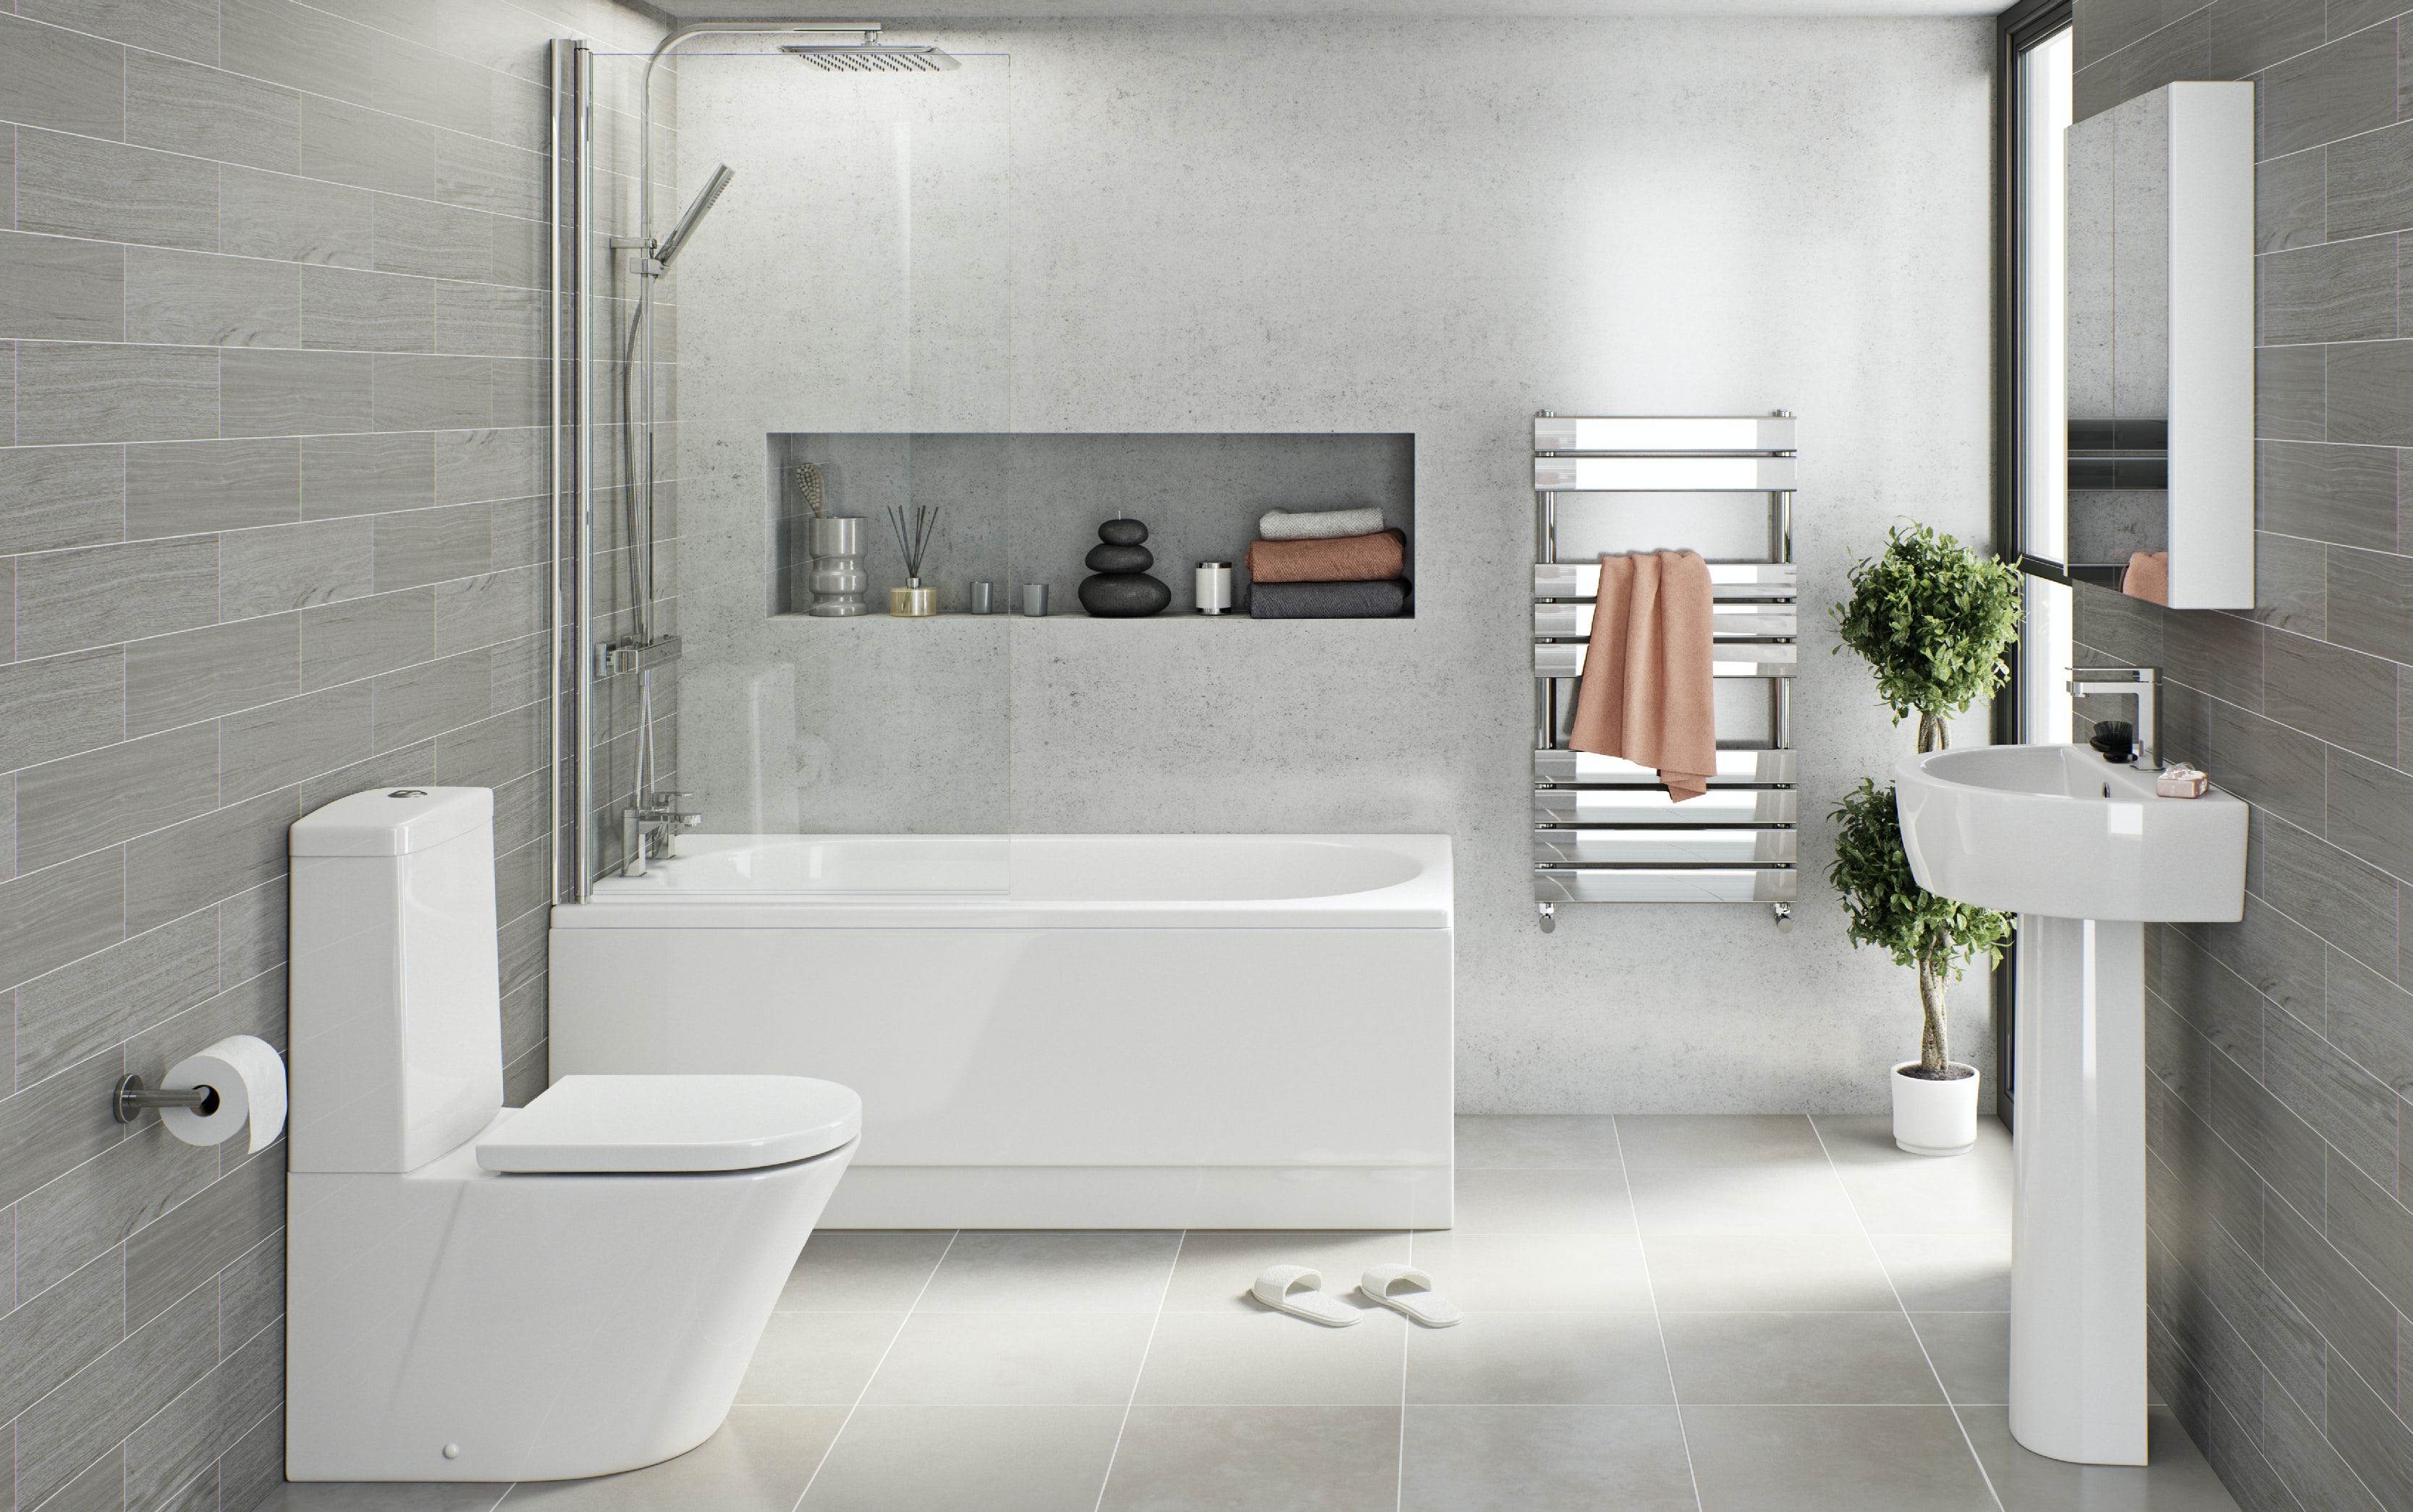 Garage Conversion Bathroom 4 Reasons To Turn Your Garage Into A Bathroom Victoriaplum